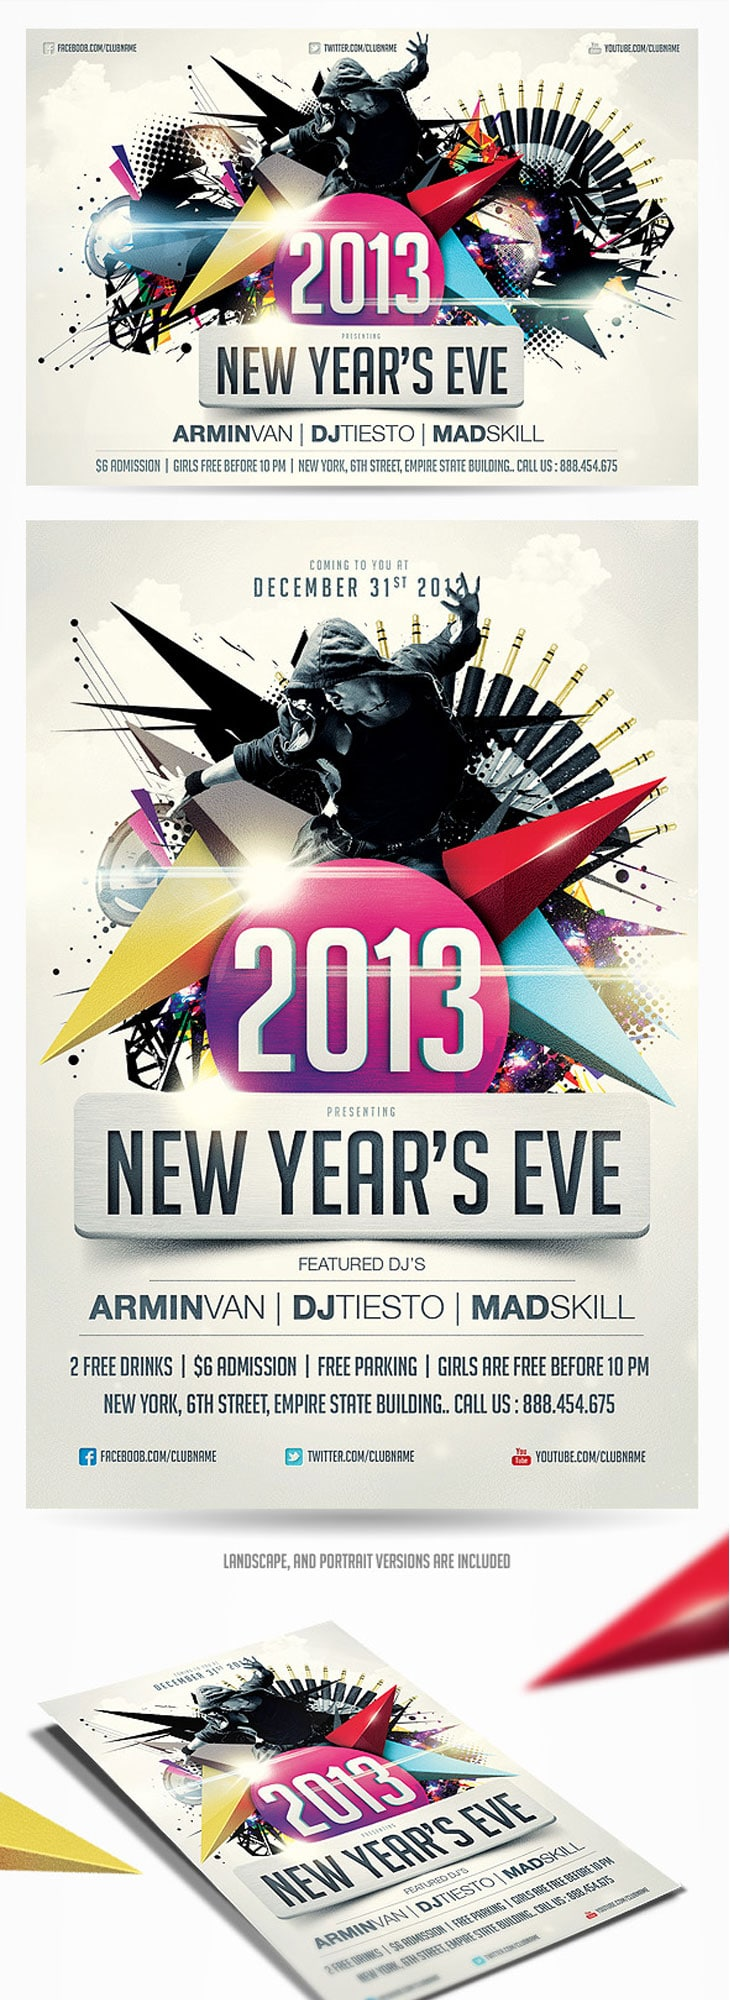 best examples of inspirational flyer designs 2013 new years eve party flyer vol 2